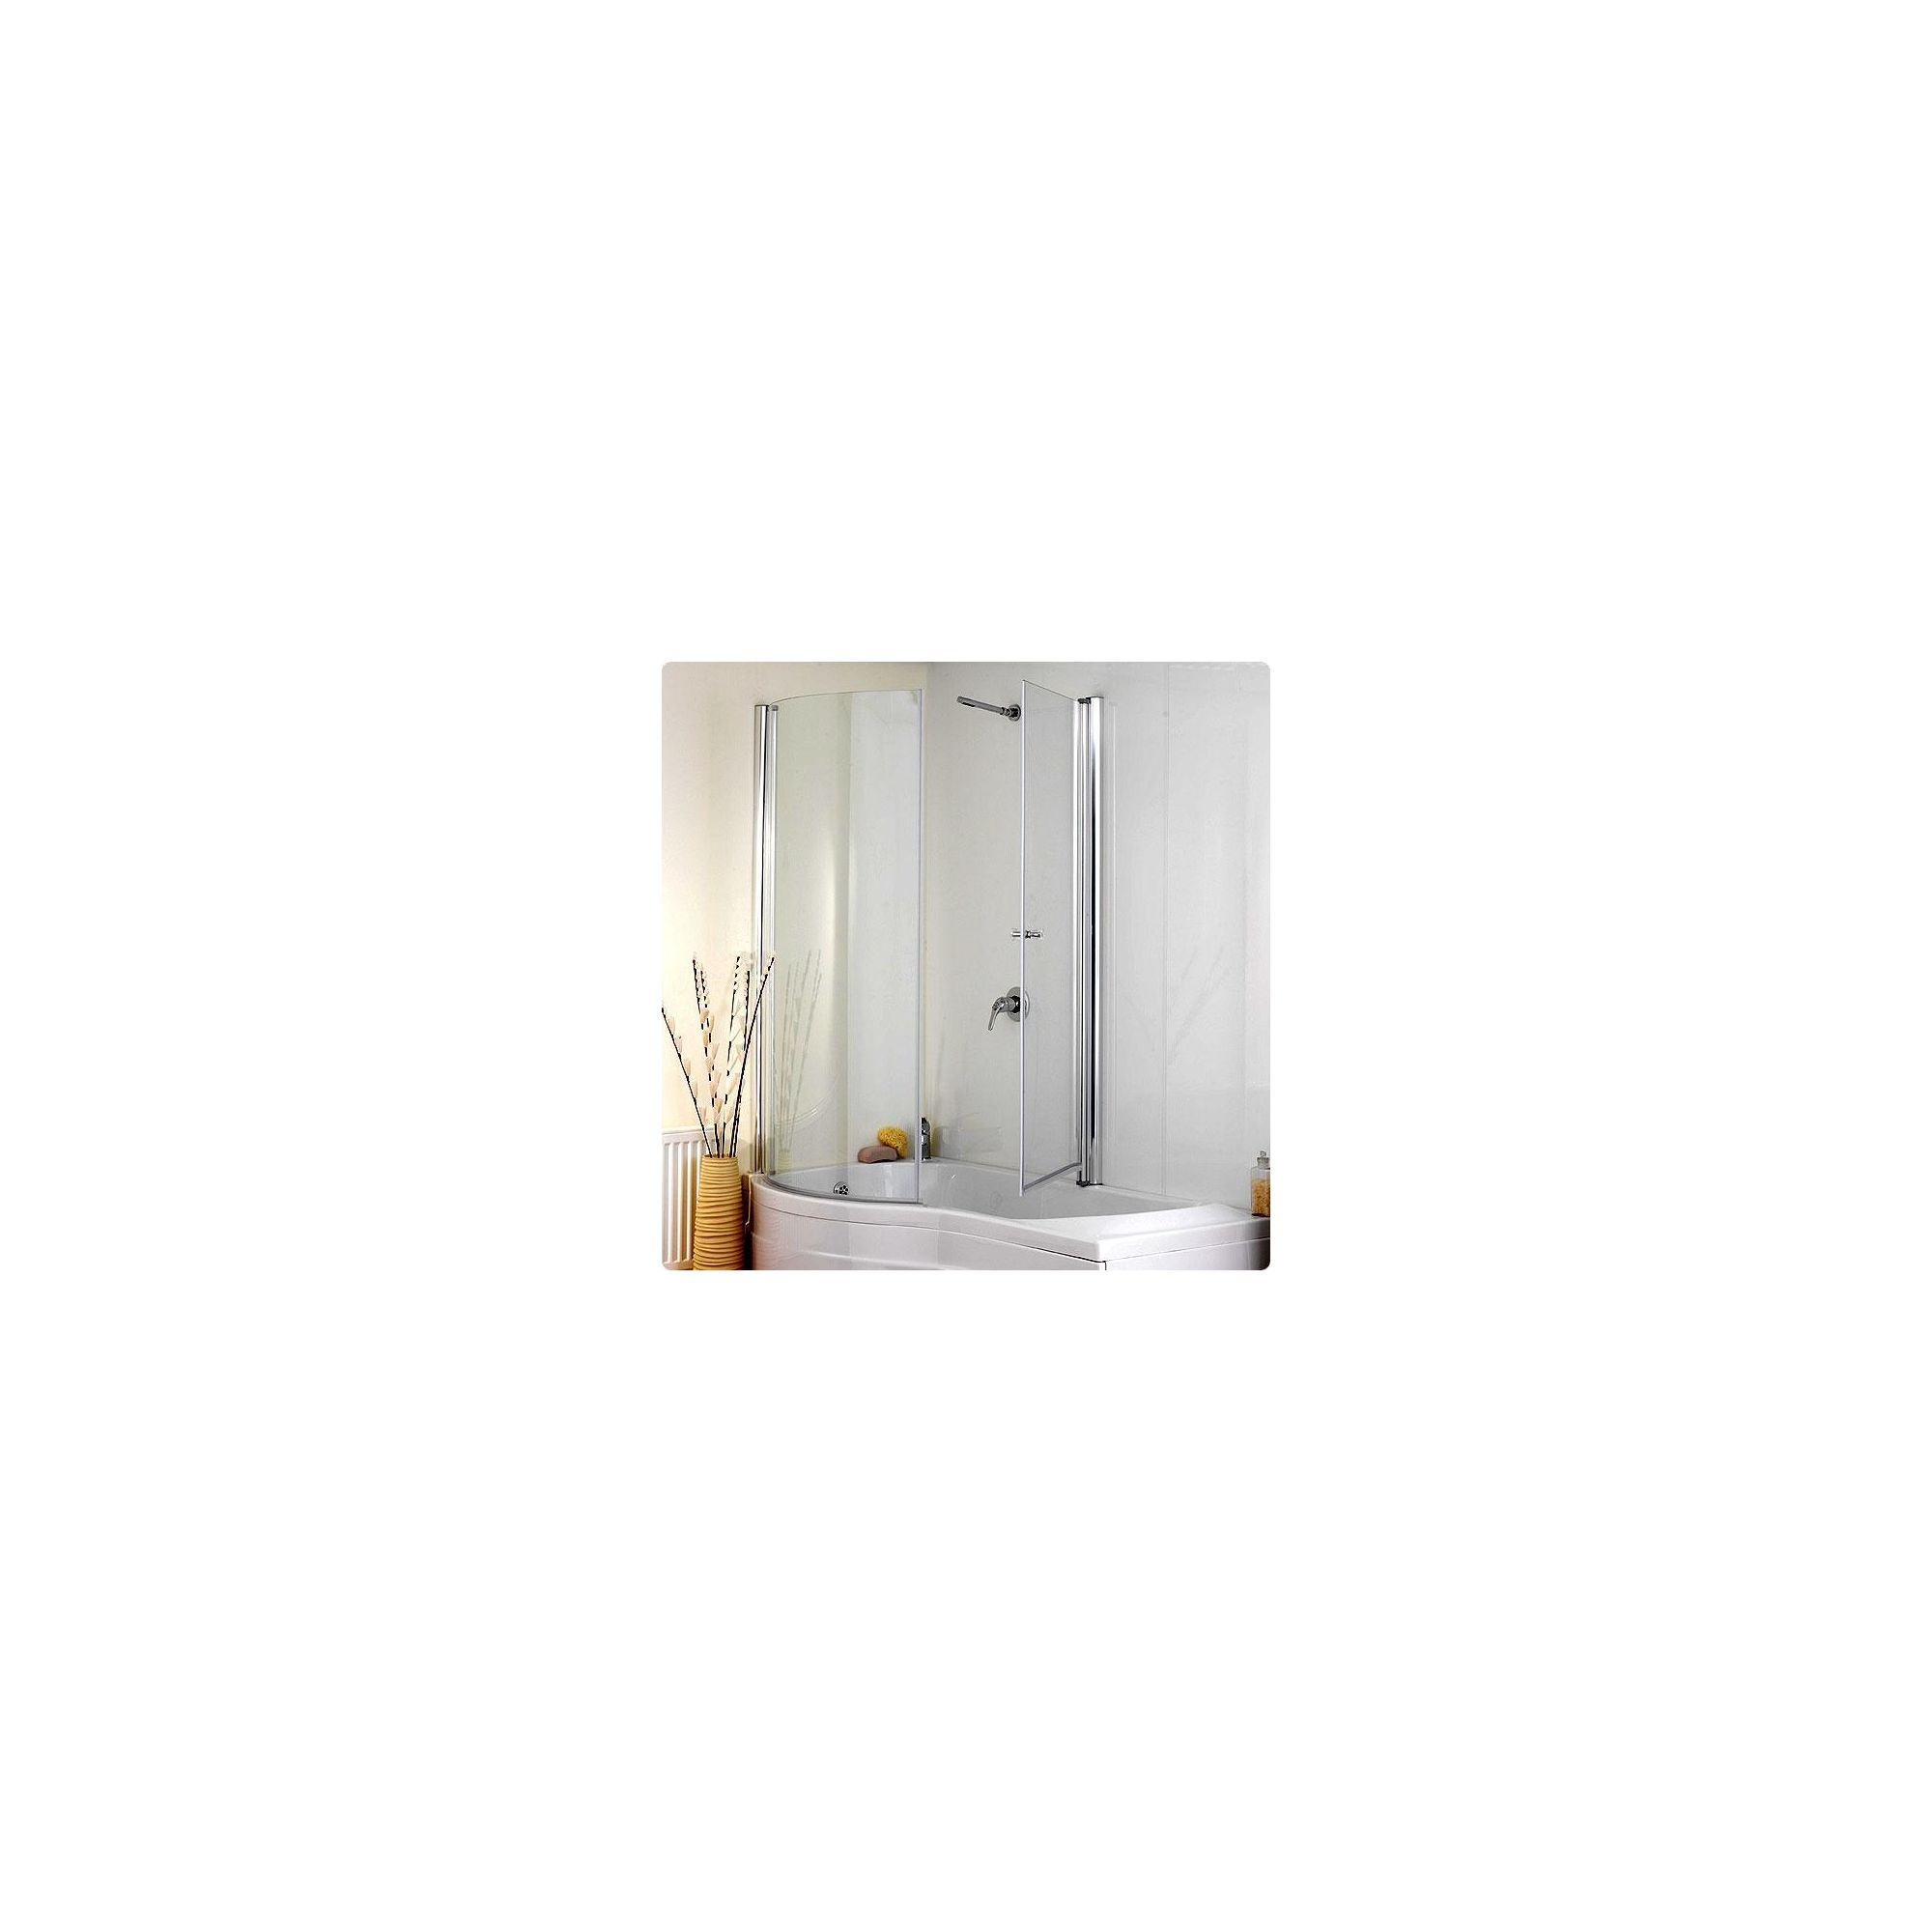 Duchy JESSICA Curved Showerbath Bath Panel withBath Screen LEFT HANDED at Tesco Direct